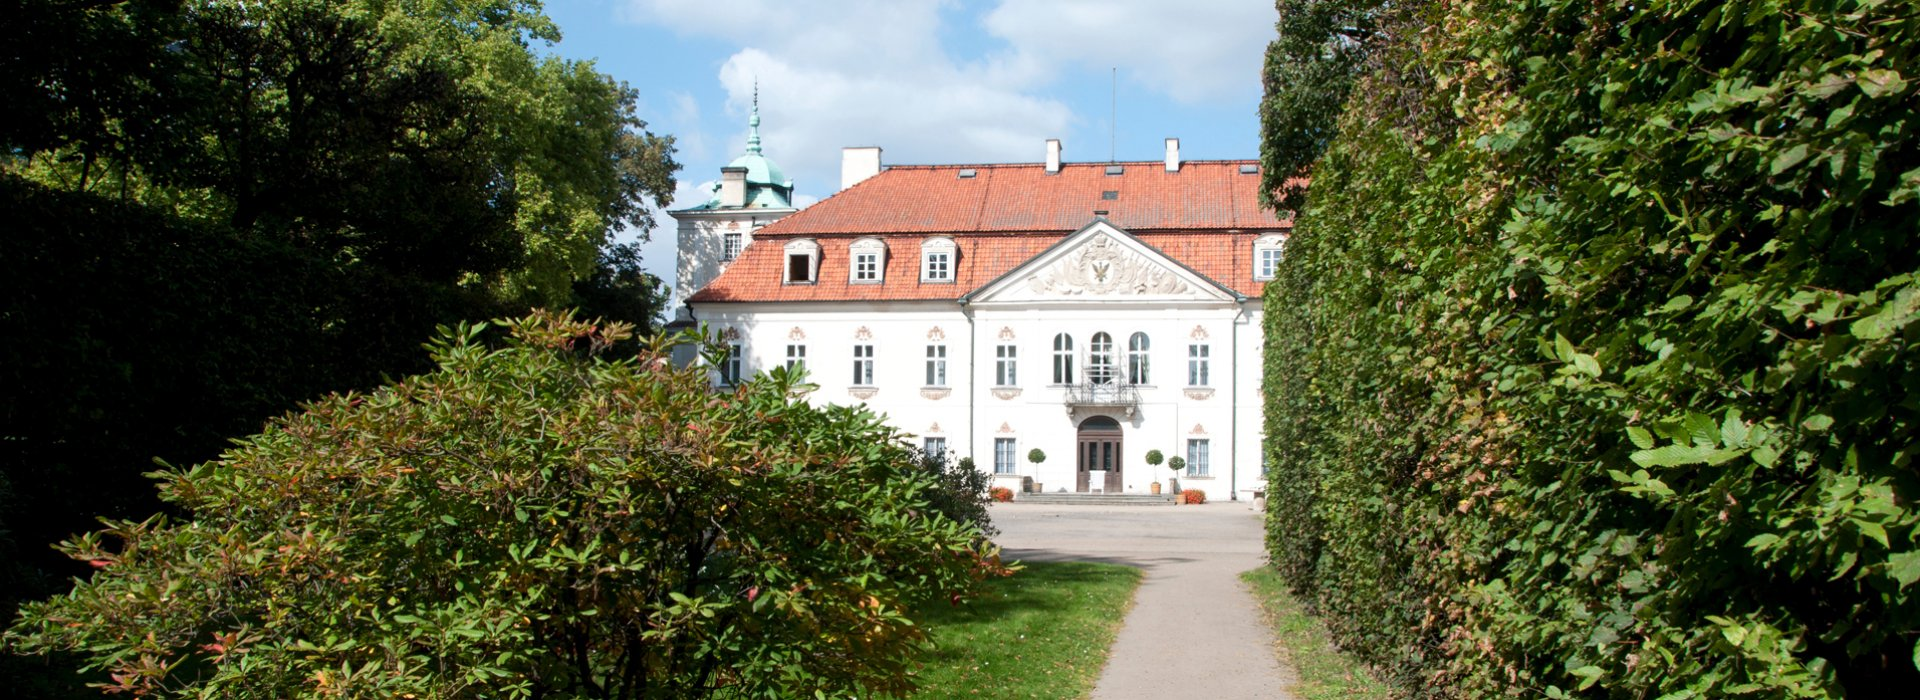 Polish aristocratic residence Nieborów located near Warsaw